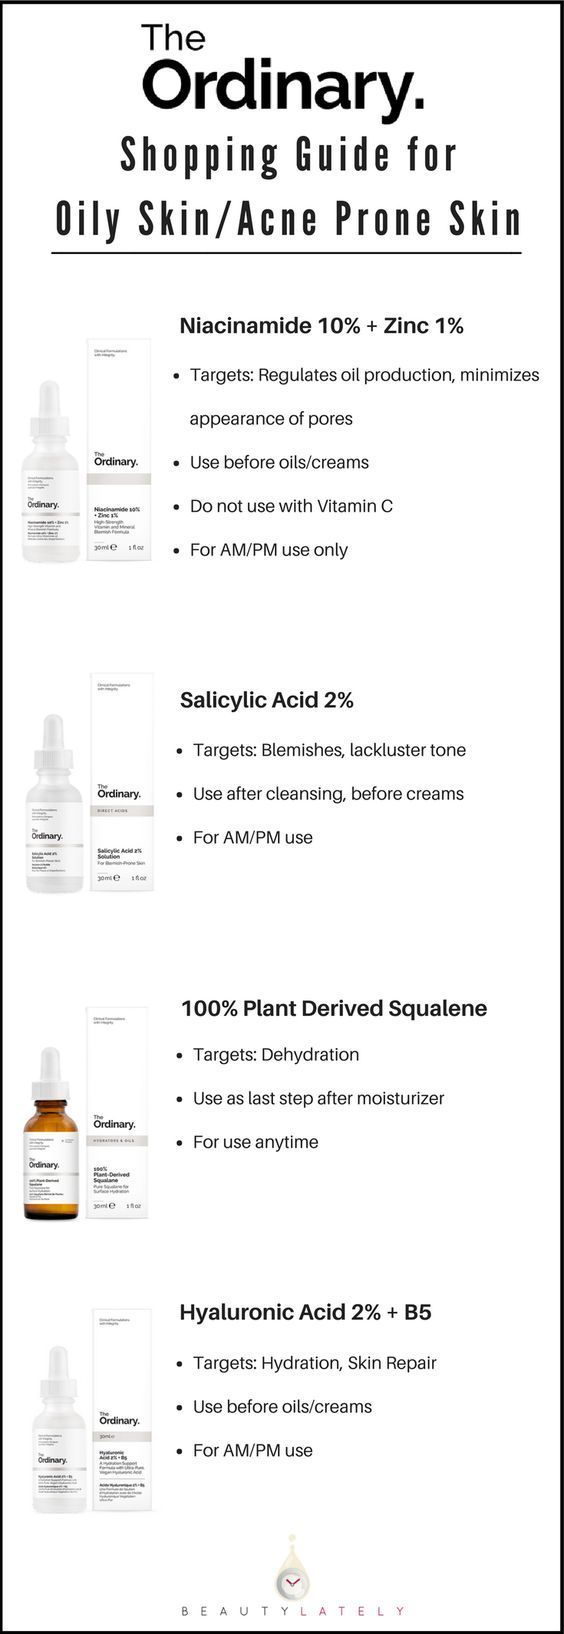 The Ordinary Skincare Guide To Oily Acne Prone Skin Skin Care Guide Oily Skin Acne Normal Skin Care